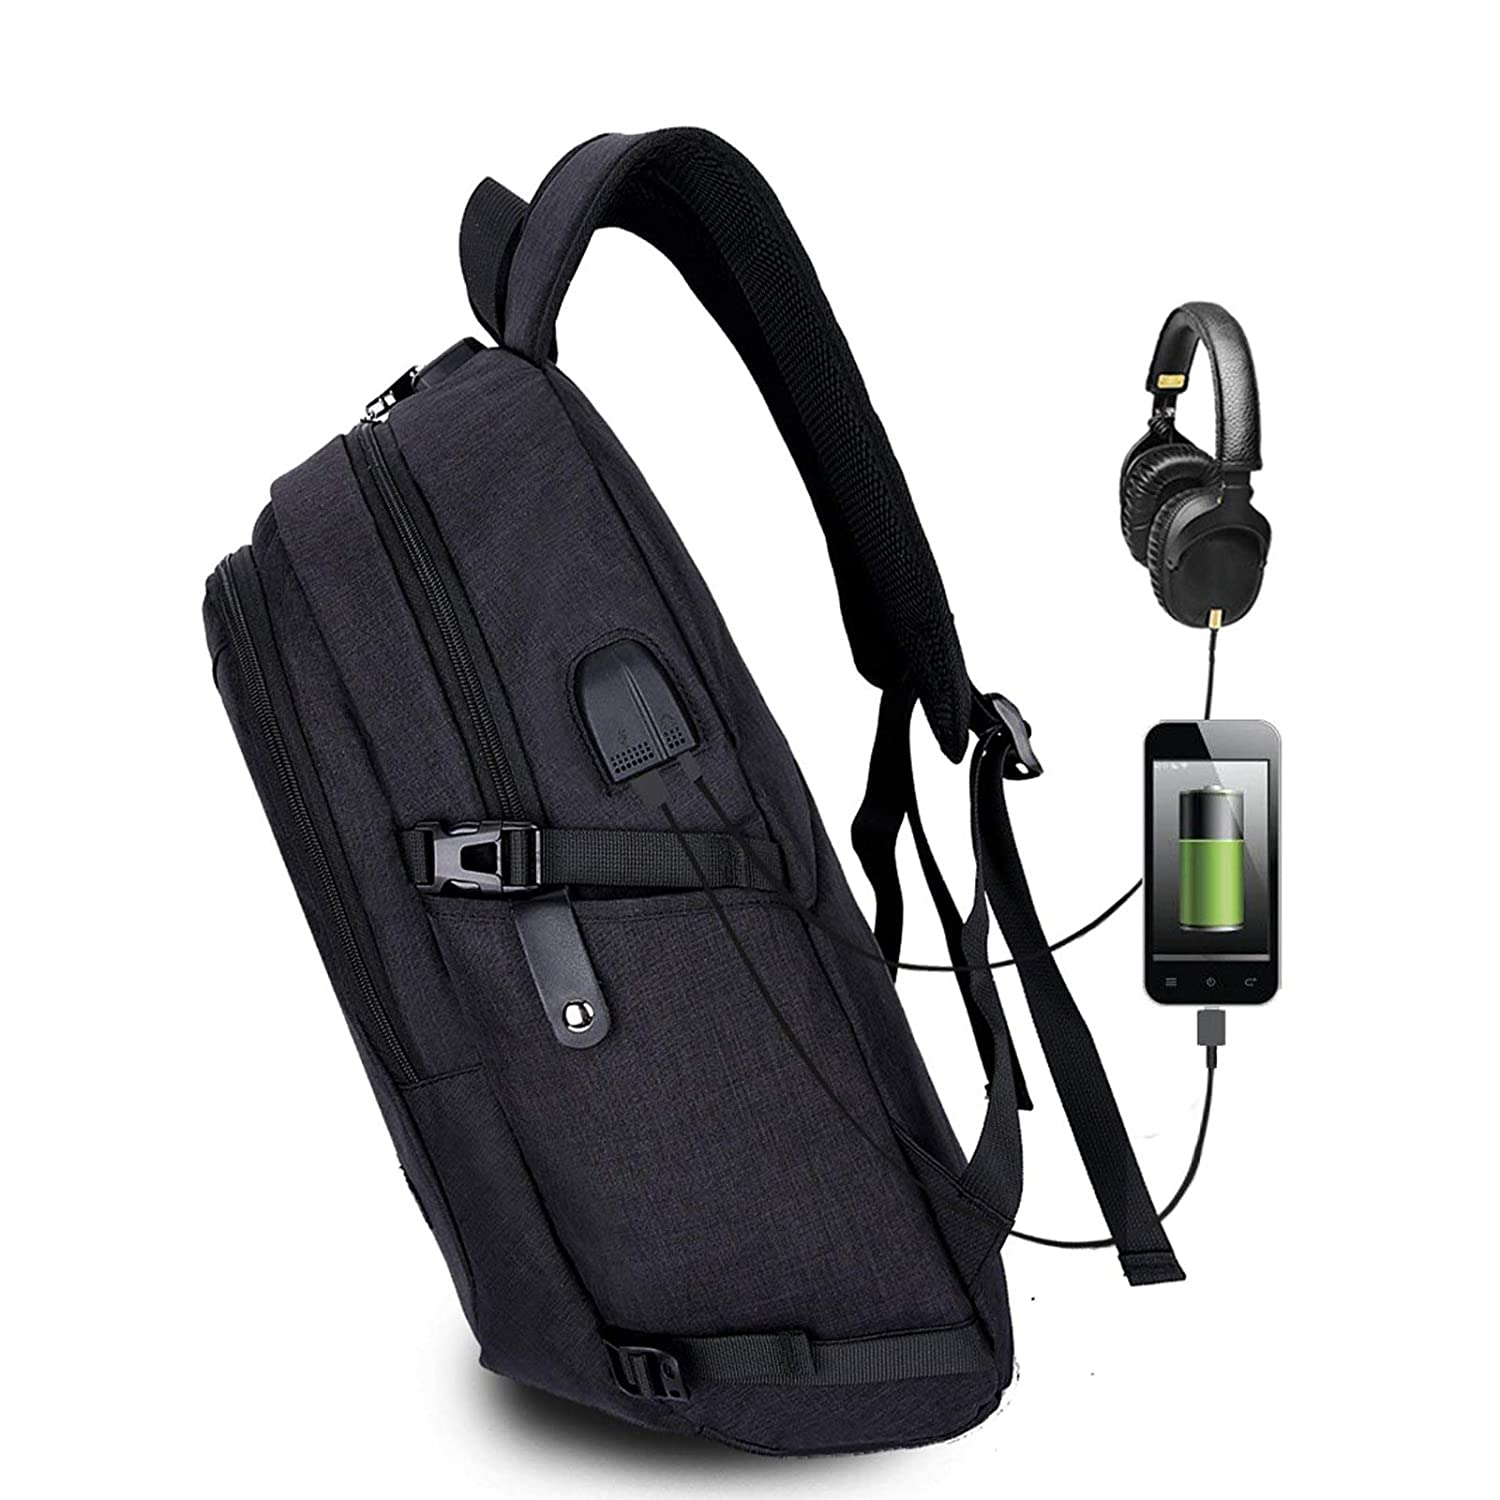 Business Anti Theft Travel Backpack with USB Charging and Headphone Port for Man and Women College Fit 15.6 Inch Laptop Bag Black-2